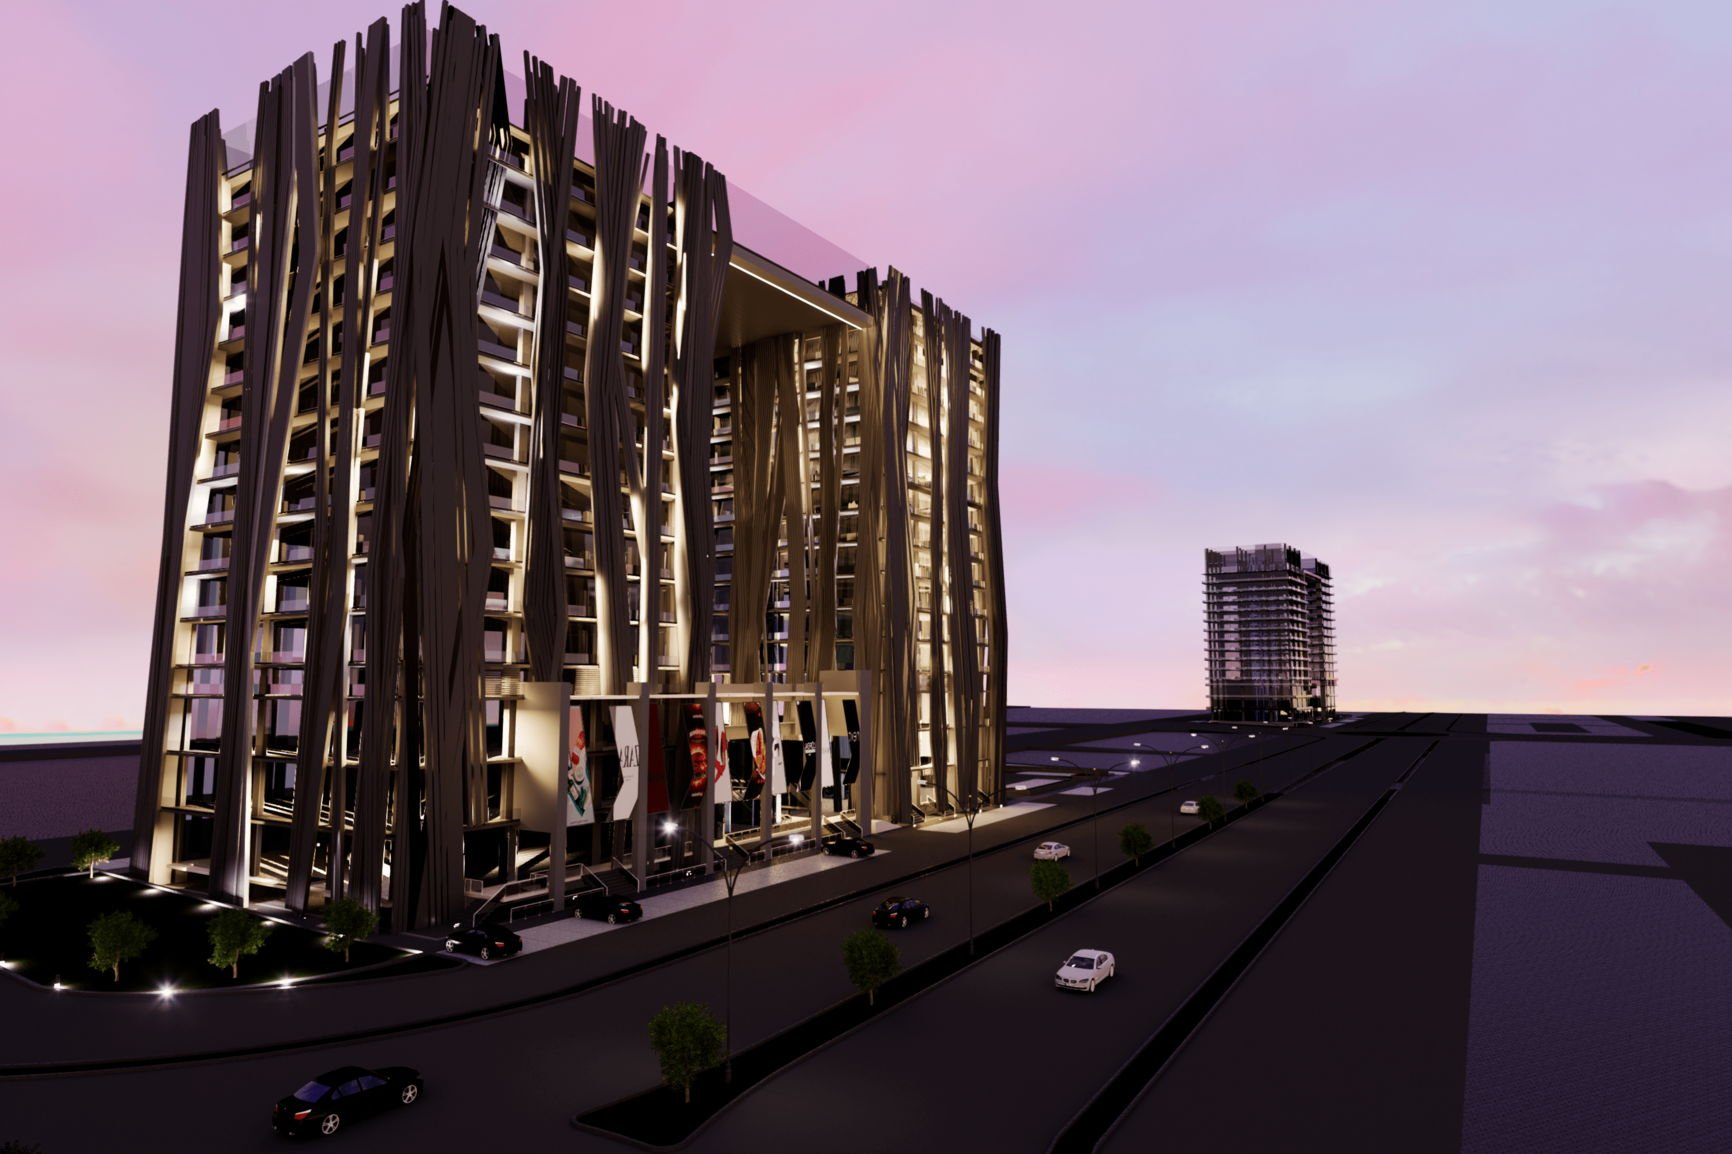 AJ Towers Night View - Commercial Shops on Installments in Gulberg